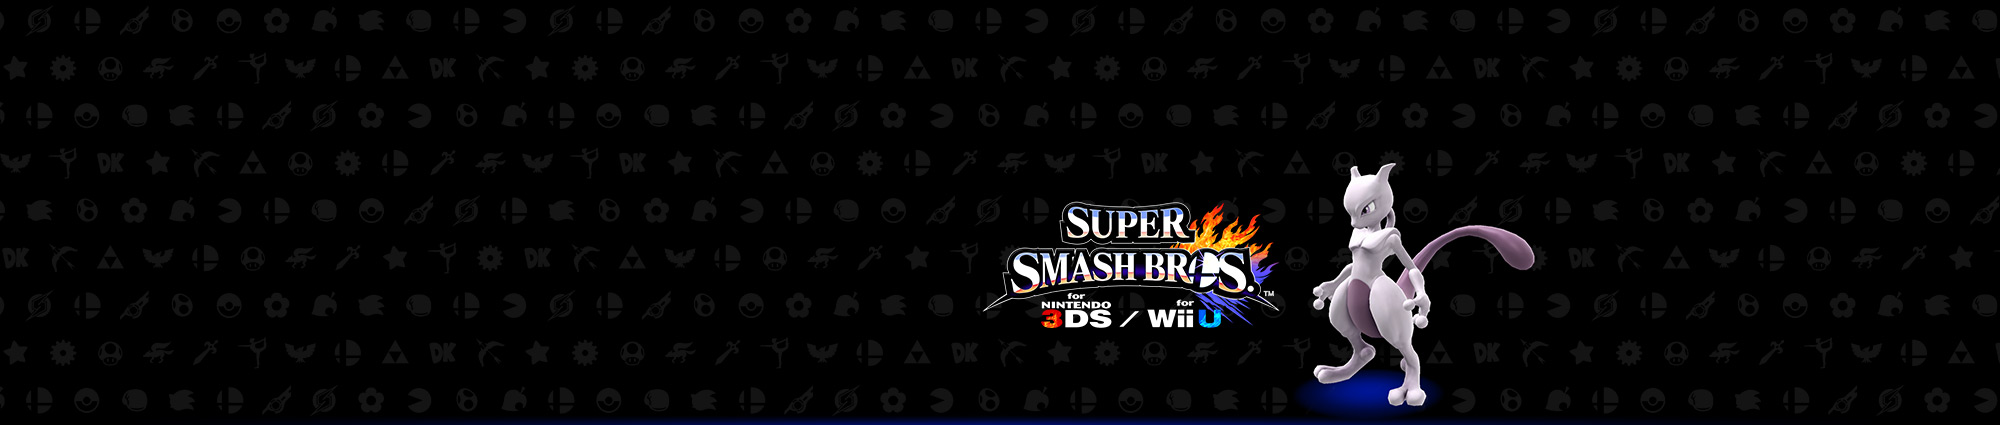 Промоакция Super Smash Bros. в Клубе Nintendo